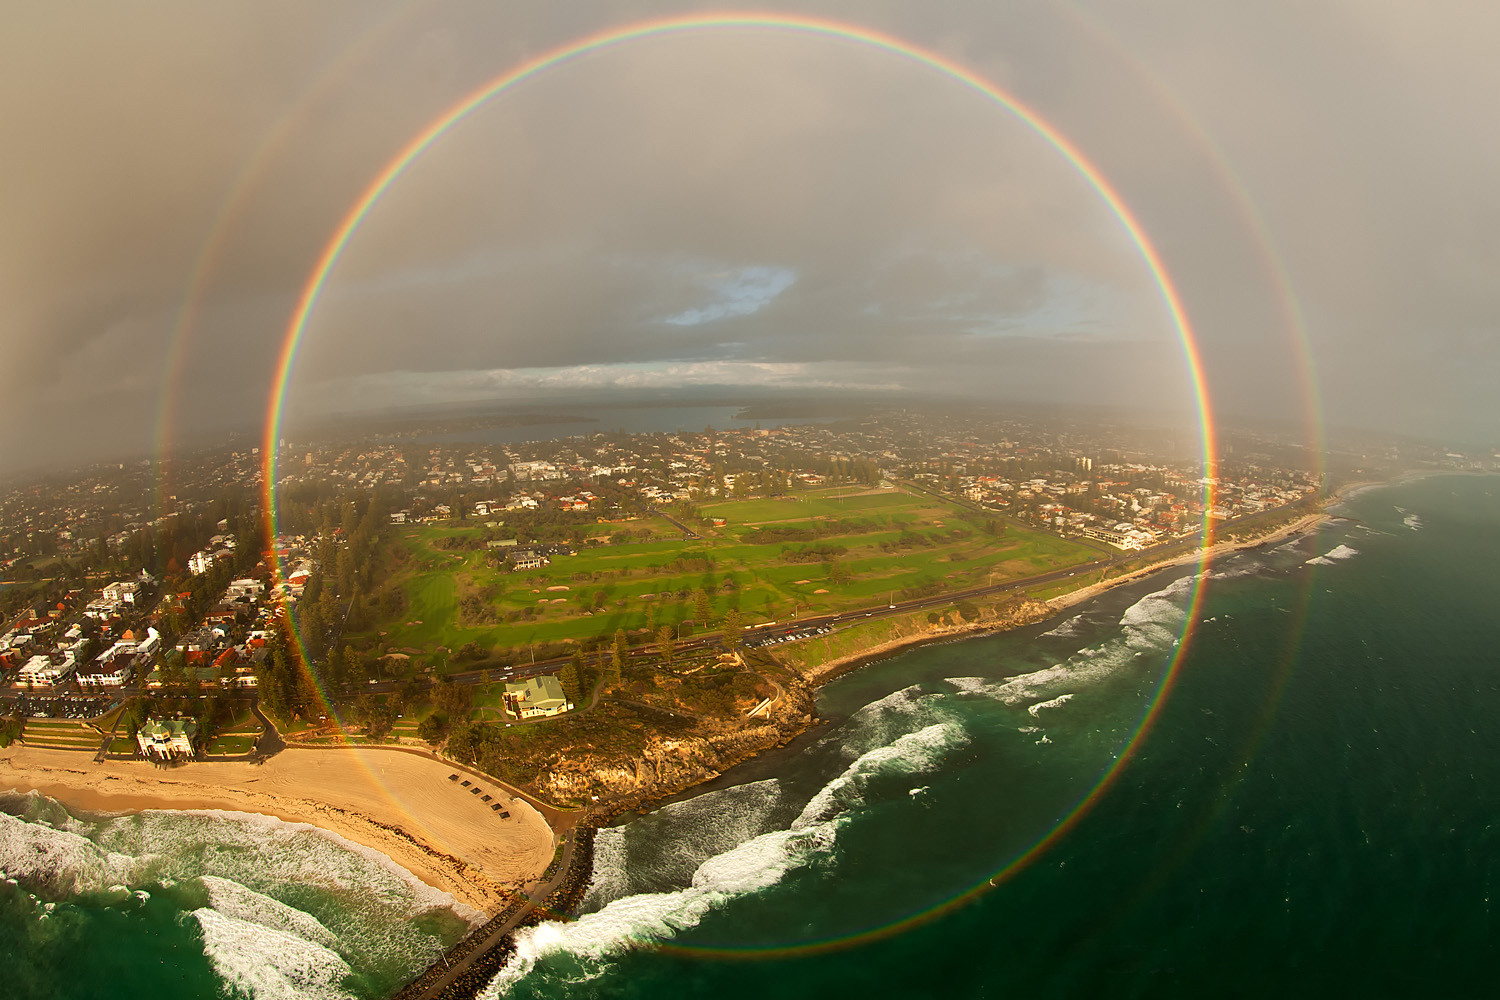 4. A 360-degree rainbow as seen from an airplane.